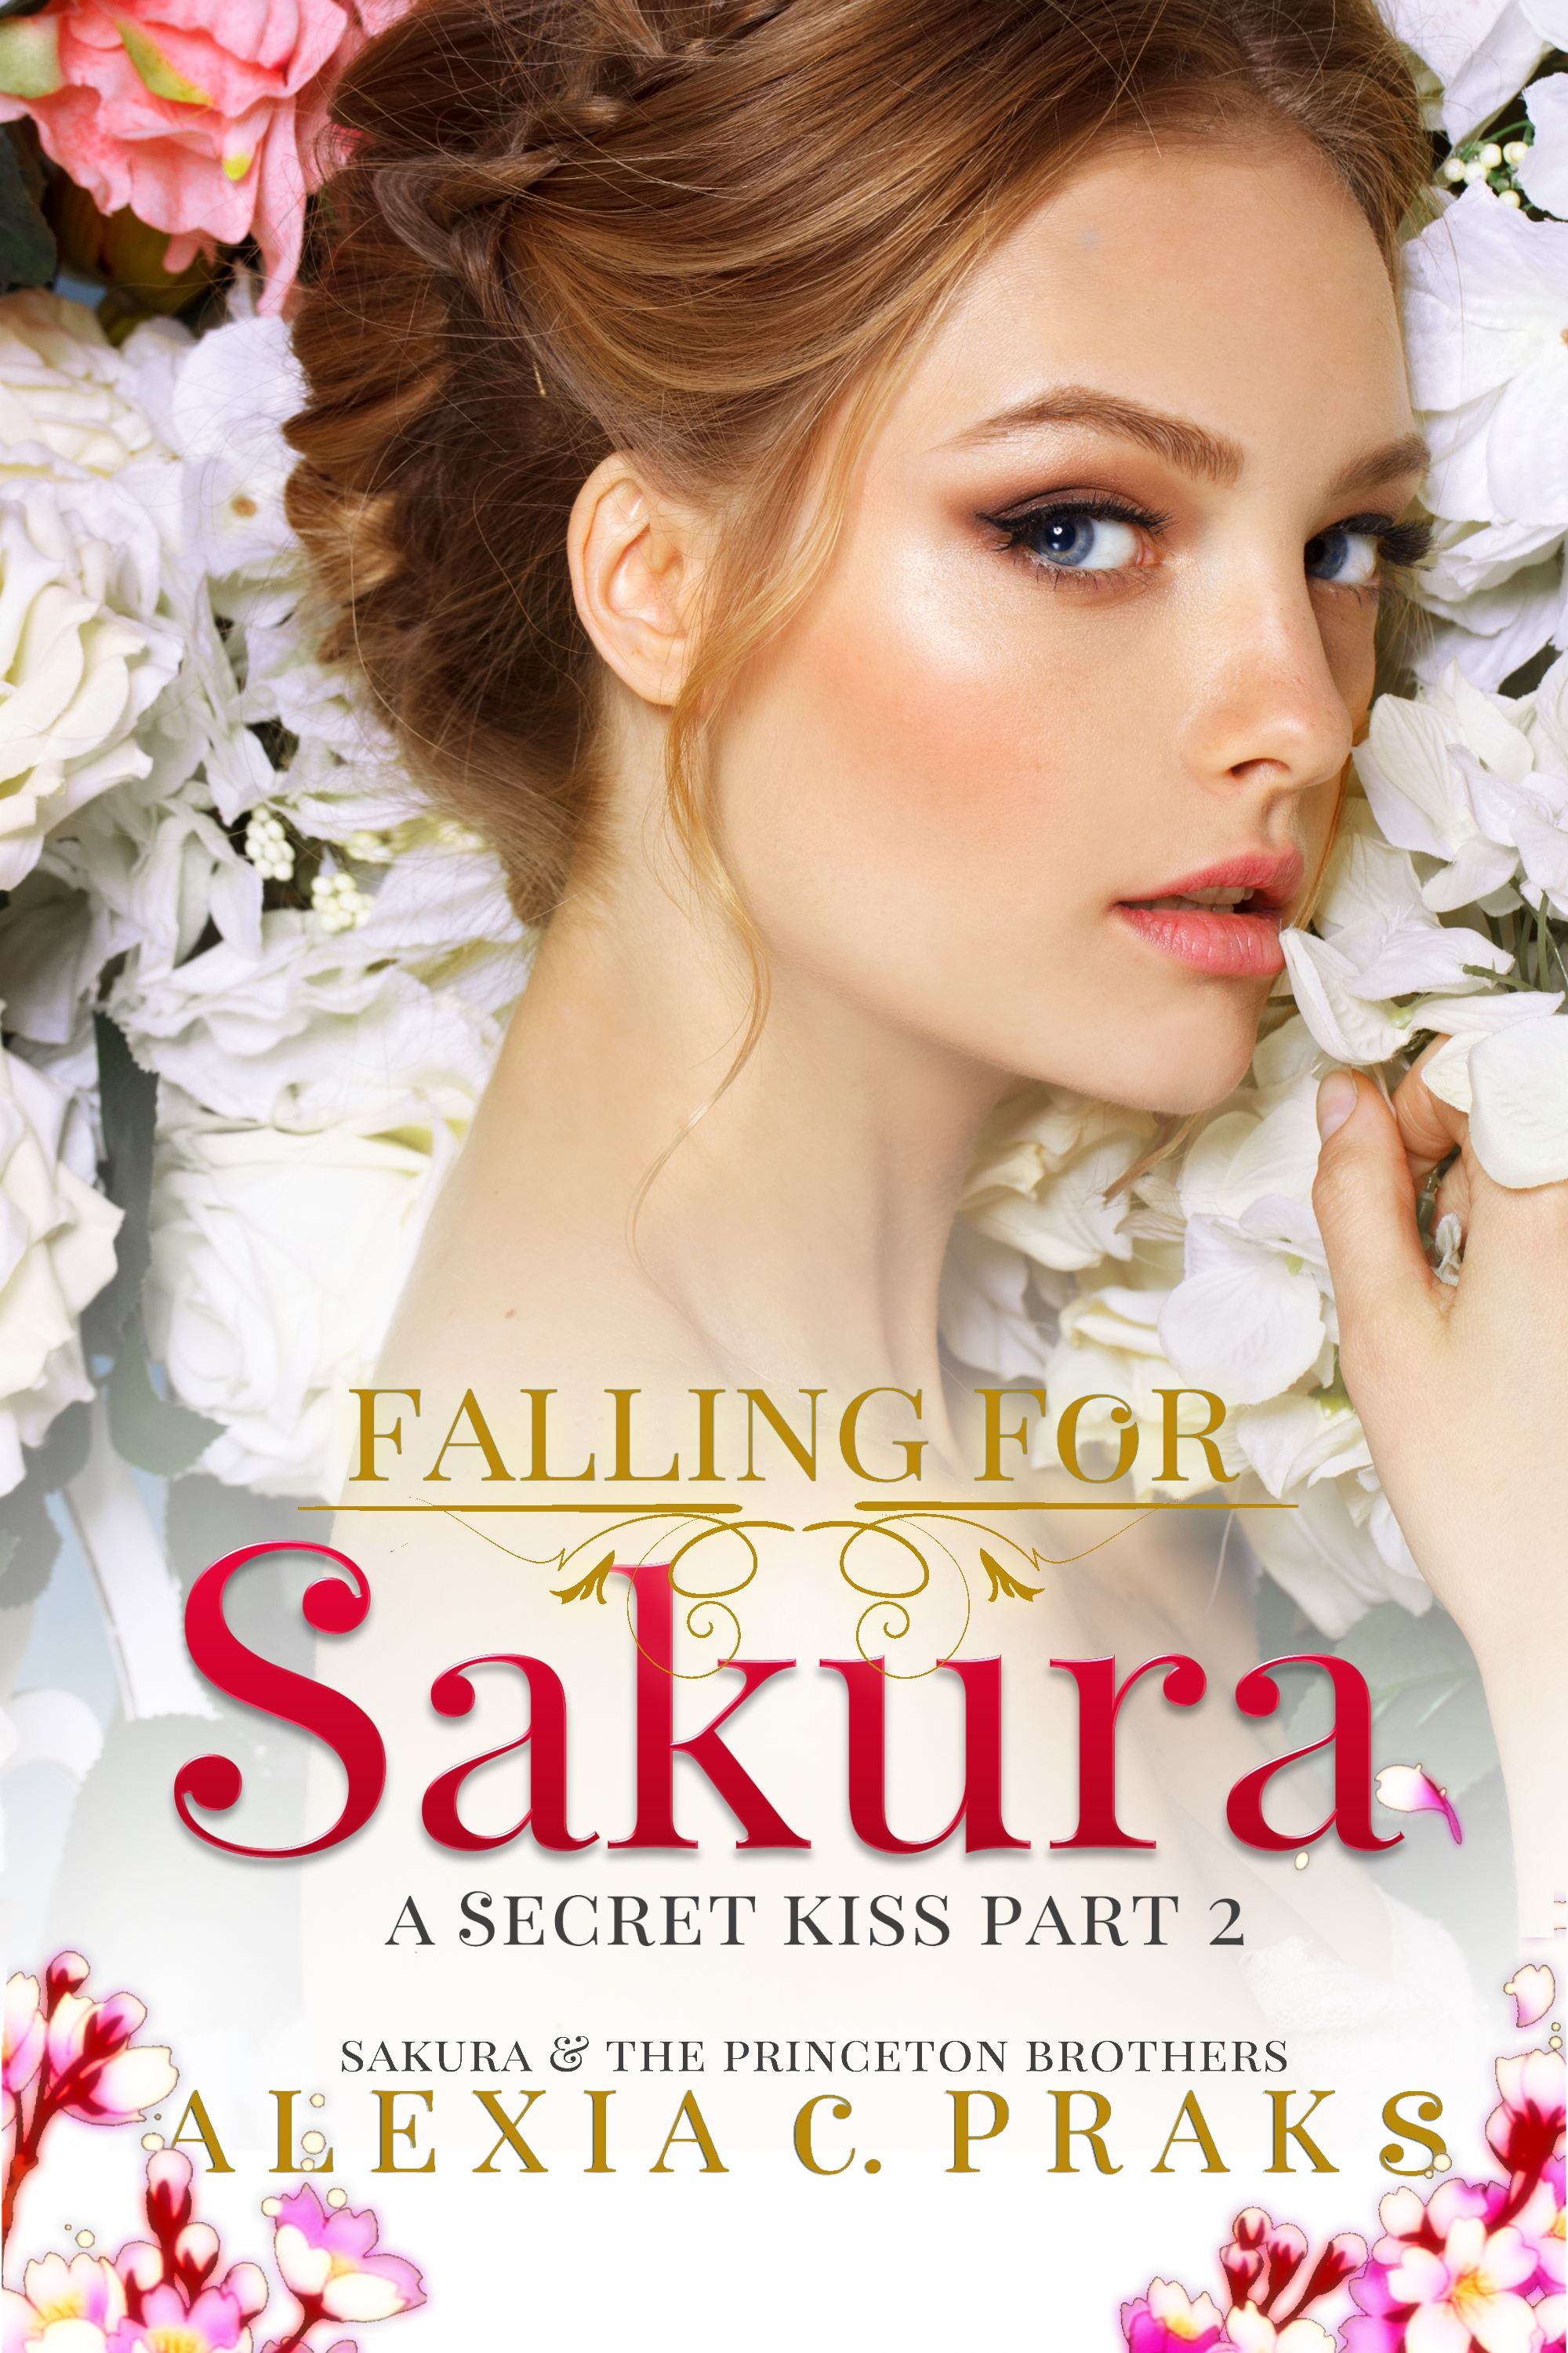 Falling for Sakura: A Secret Kiss Part 2 by Alexia Praks